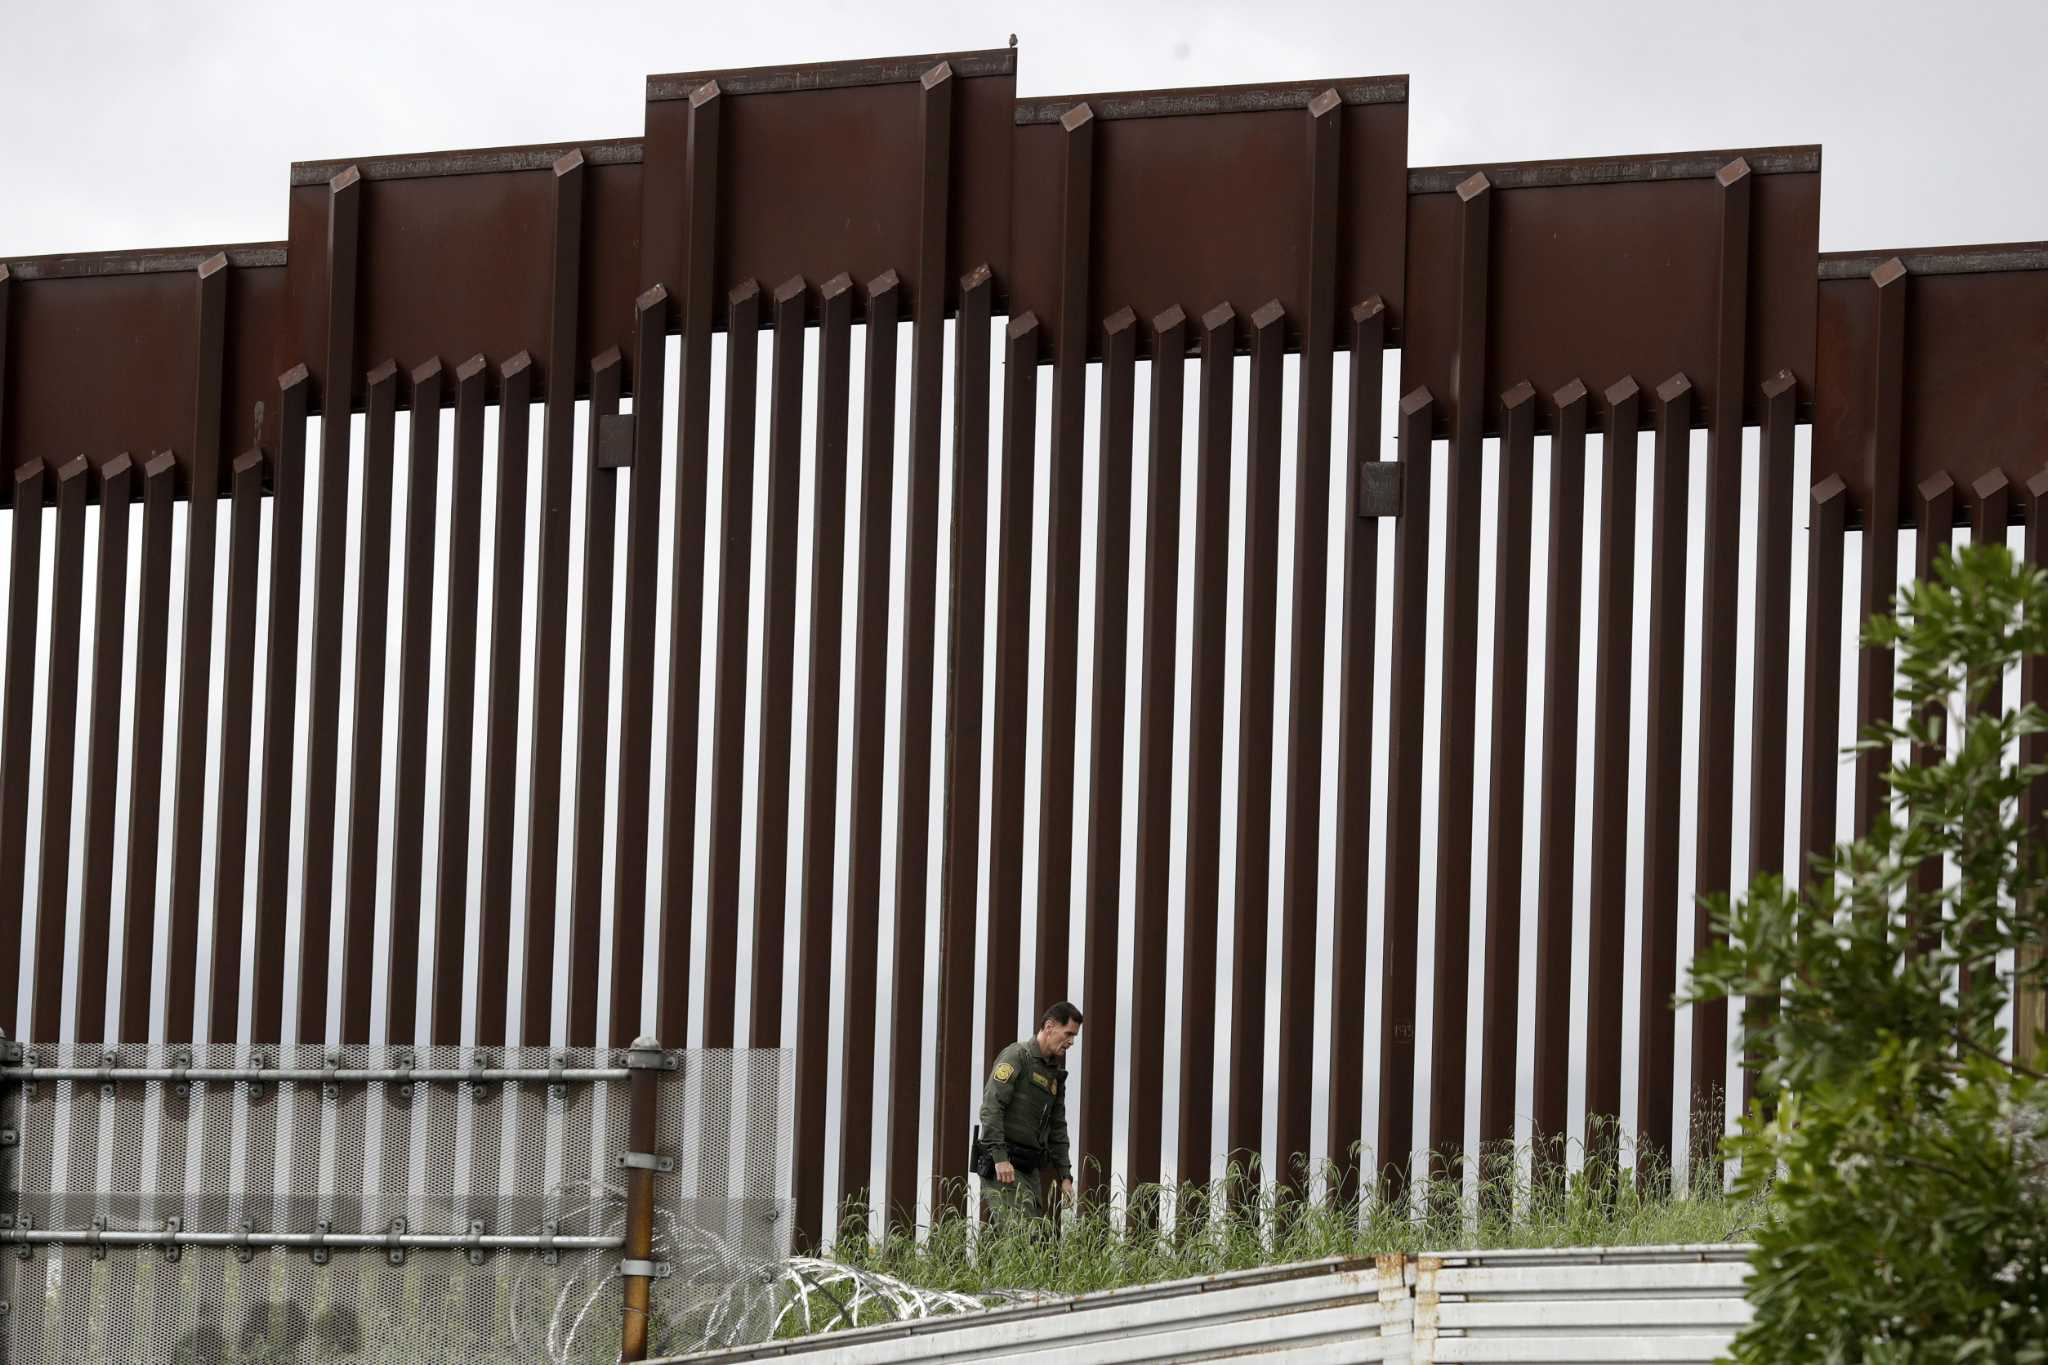 Border wall: Hundreds of miles funded, 5 new miles built